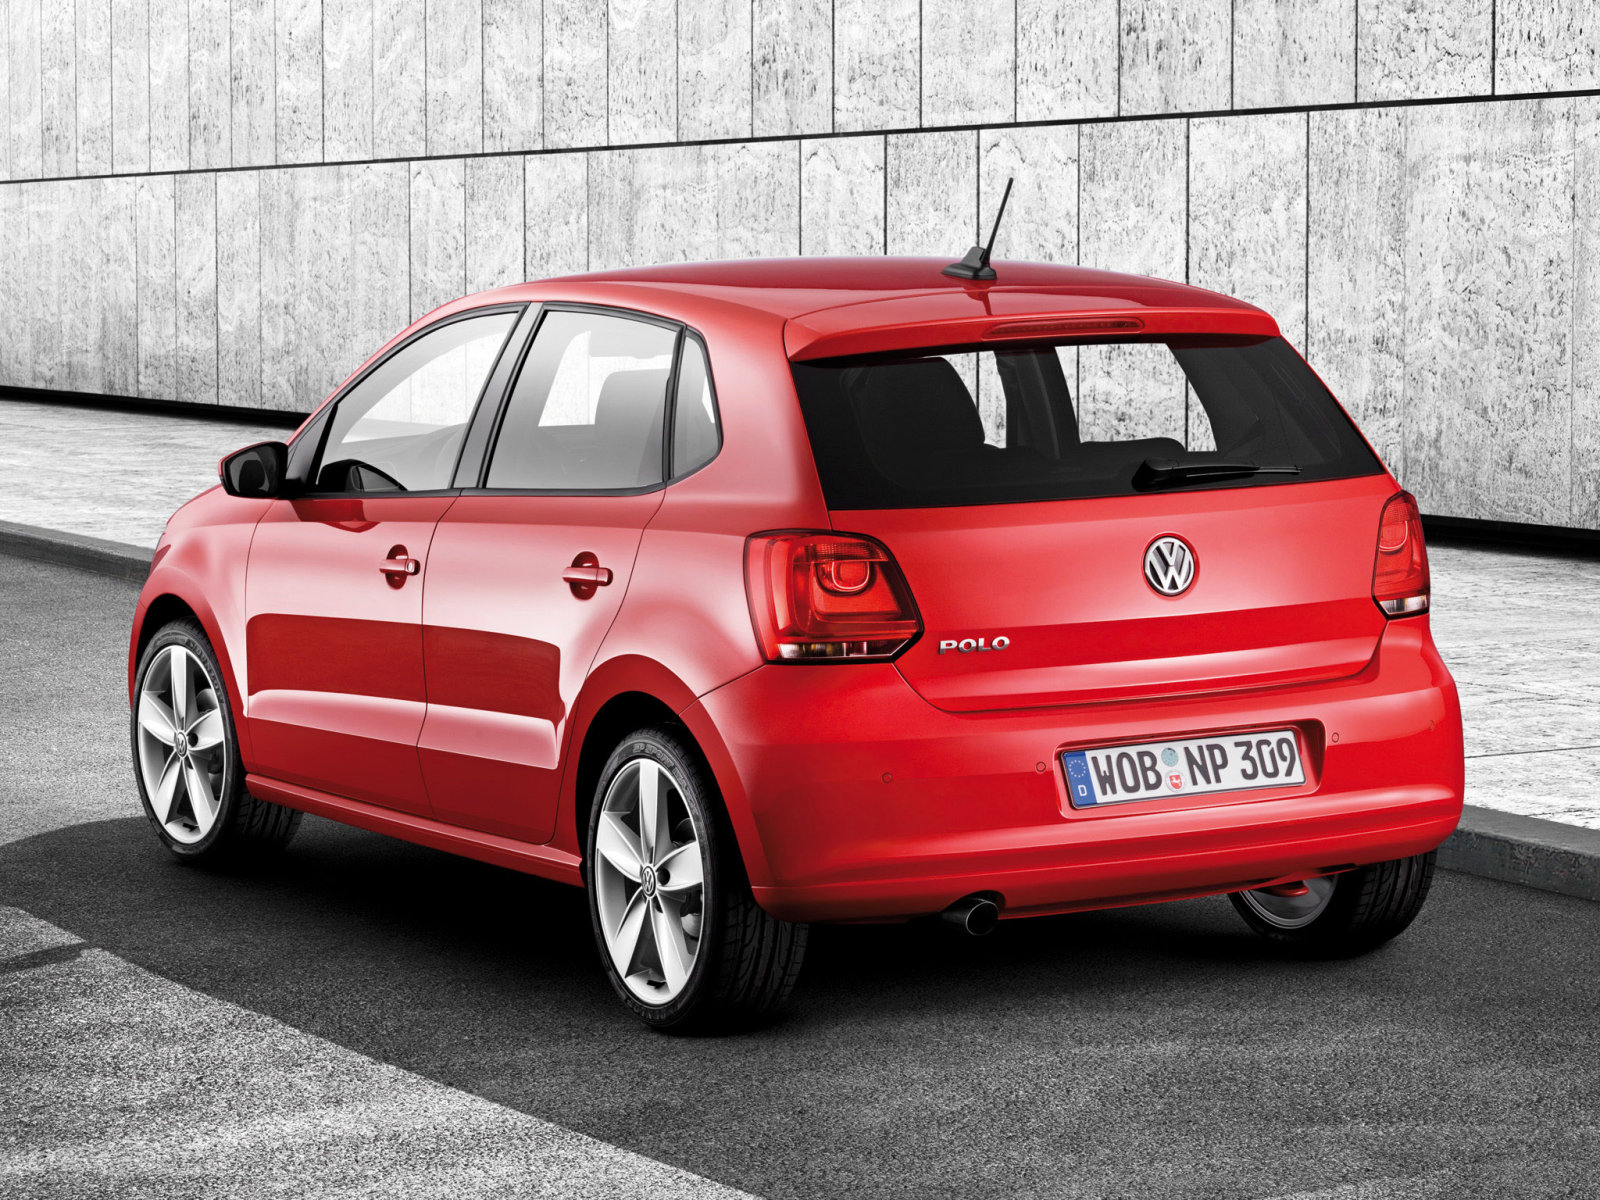 volkswagen polo v specifications description photos. Black Bedroom Furniture Sets. Home Design Ideas